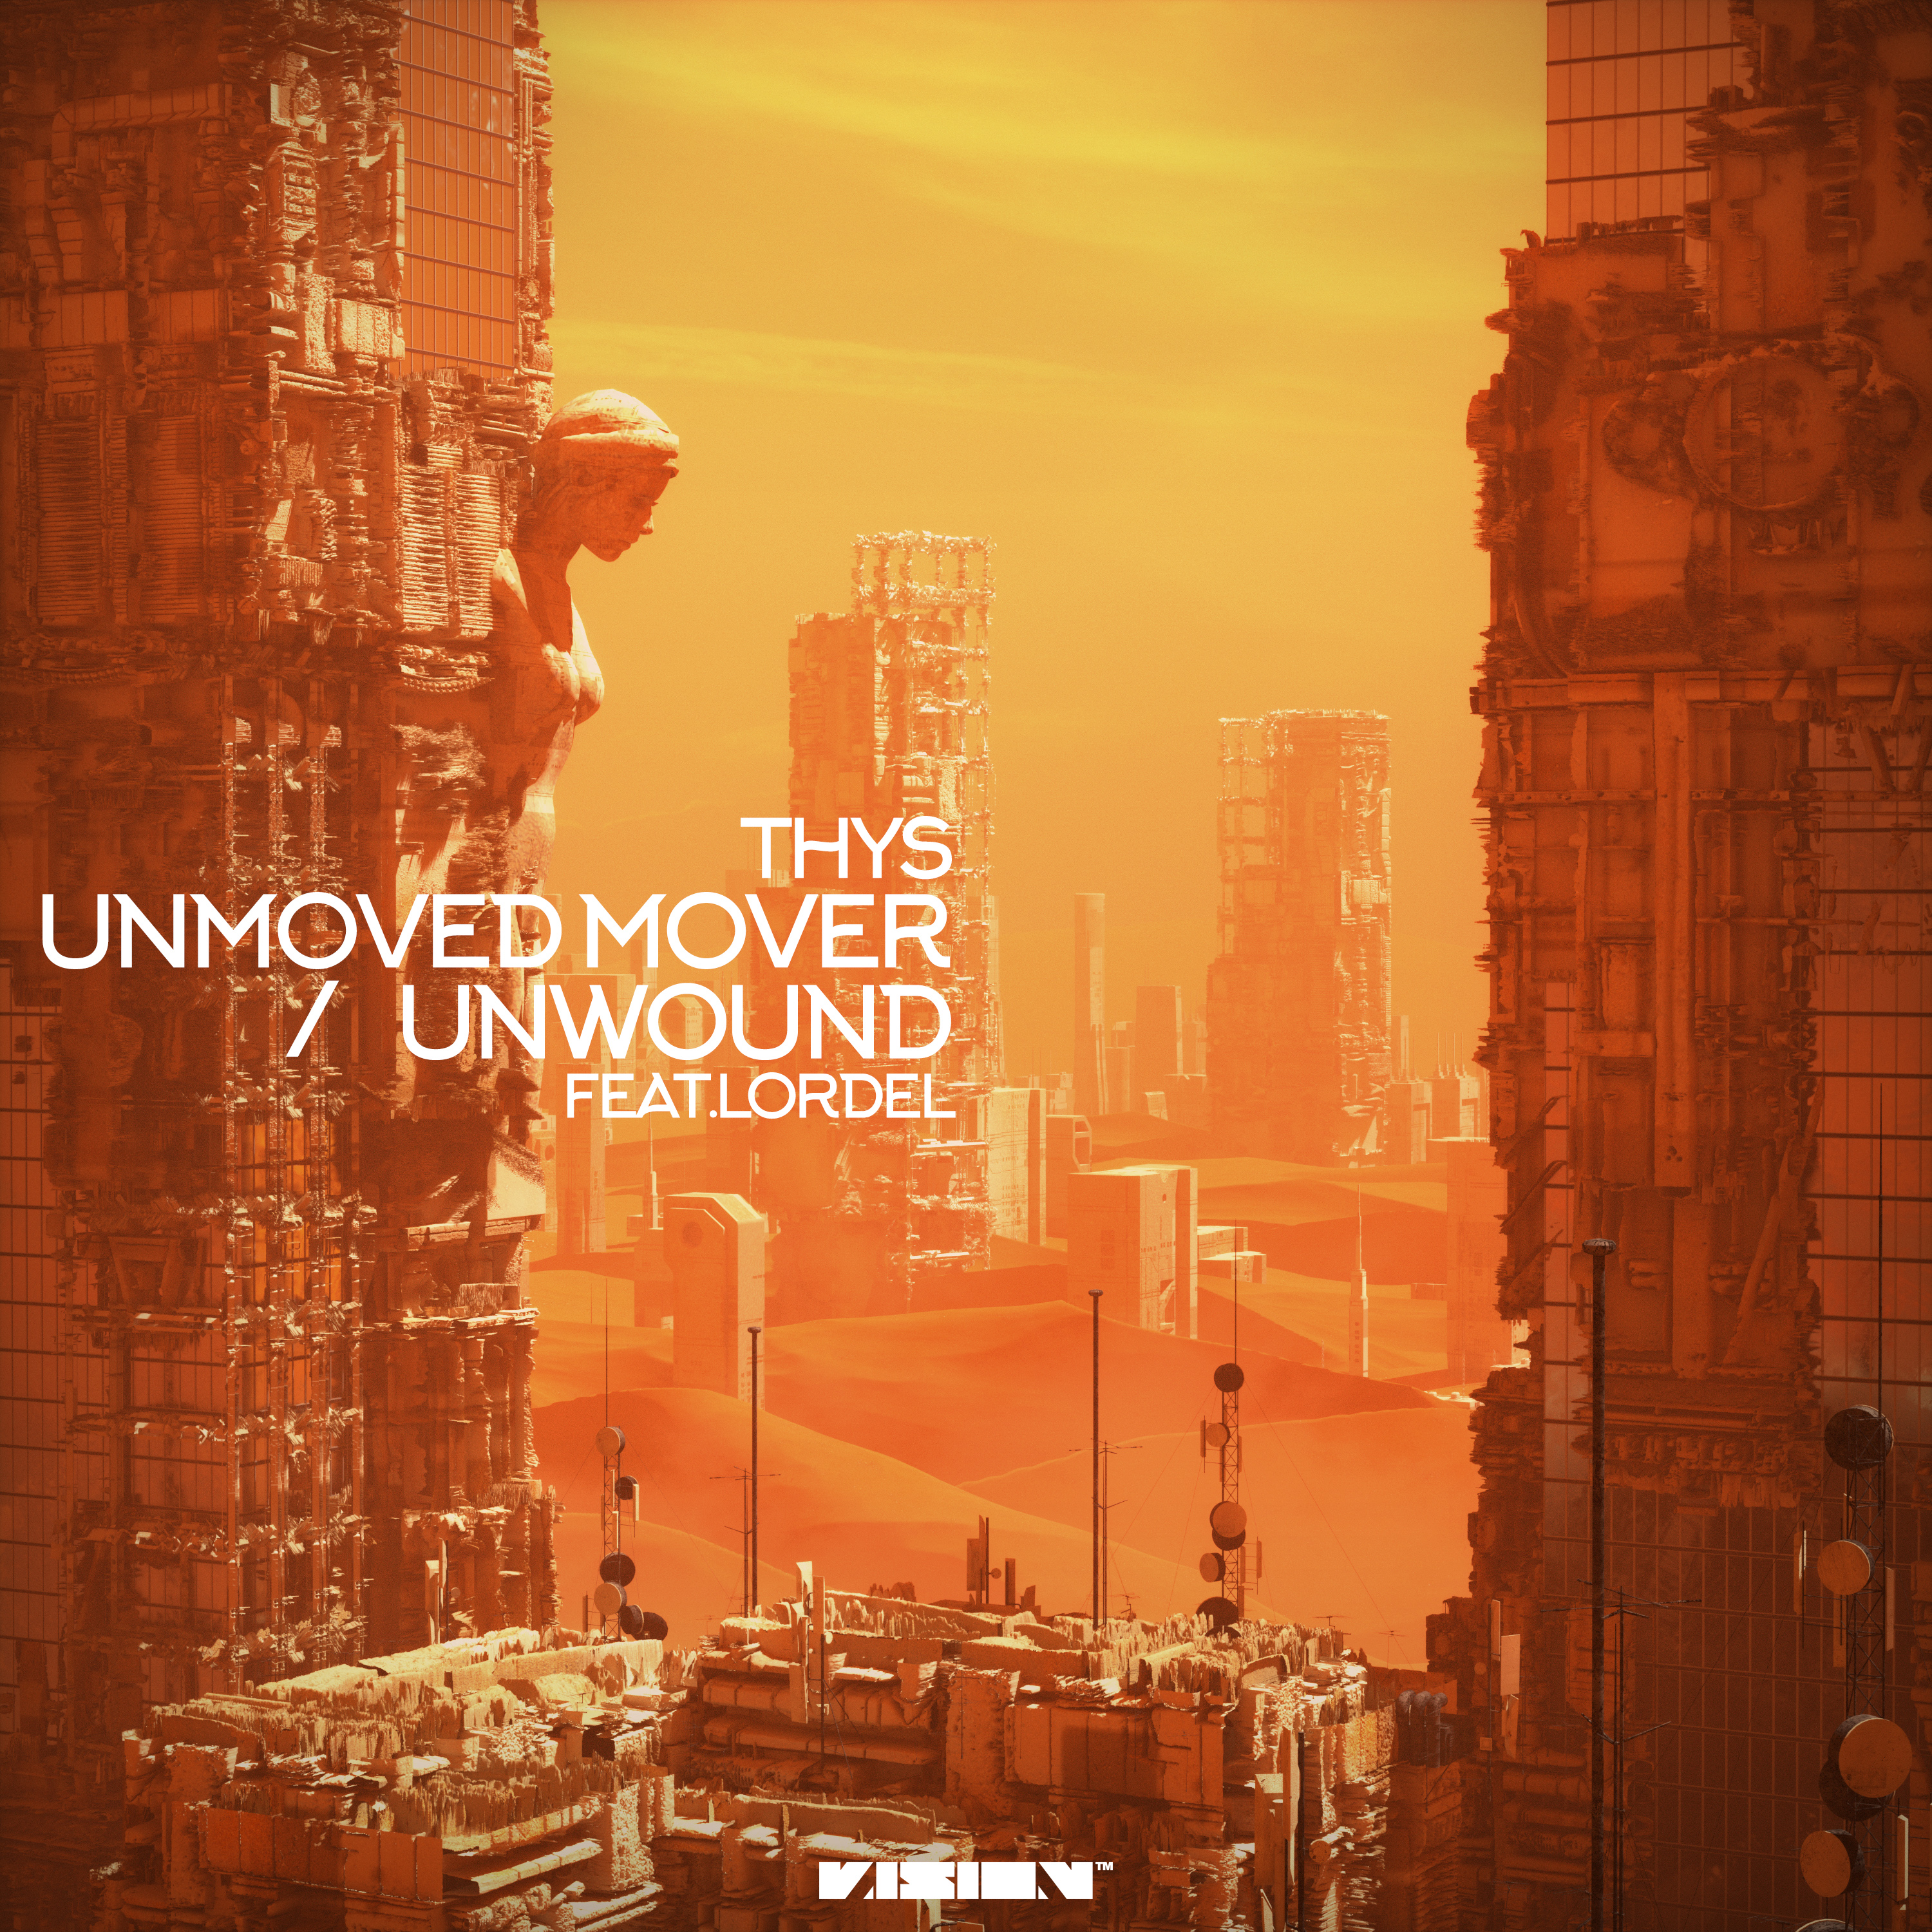 Unmoved Mover / Unwound Image